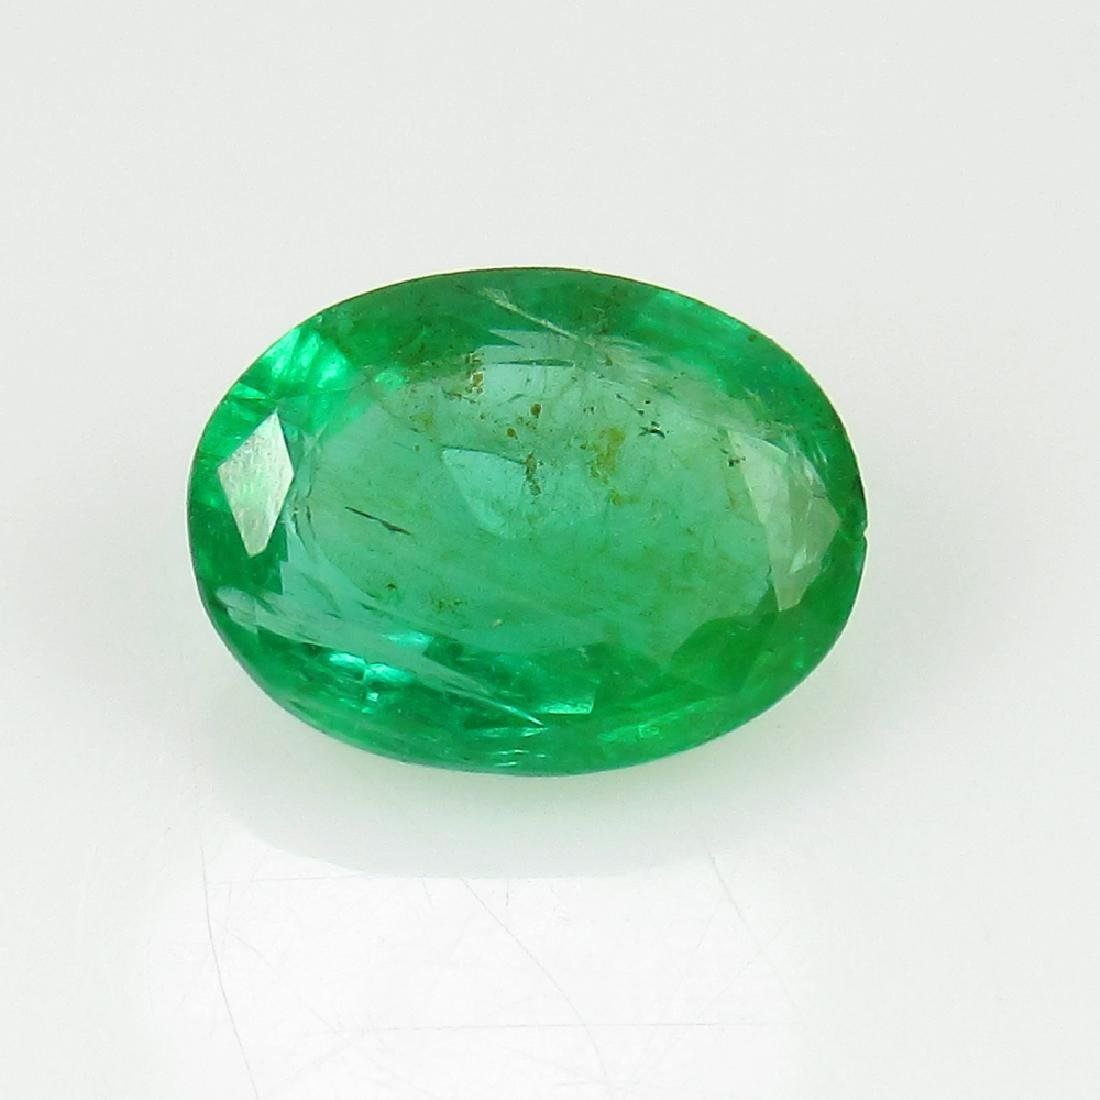 1.89 Ct IGI Certified Genuine Zambian Emerald Nice Oval